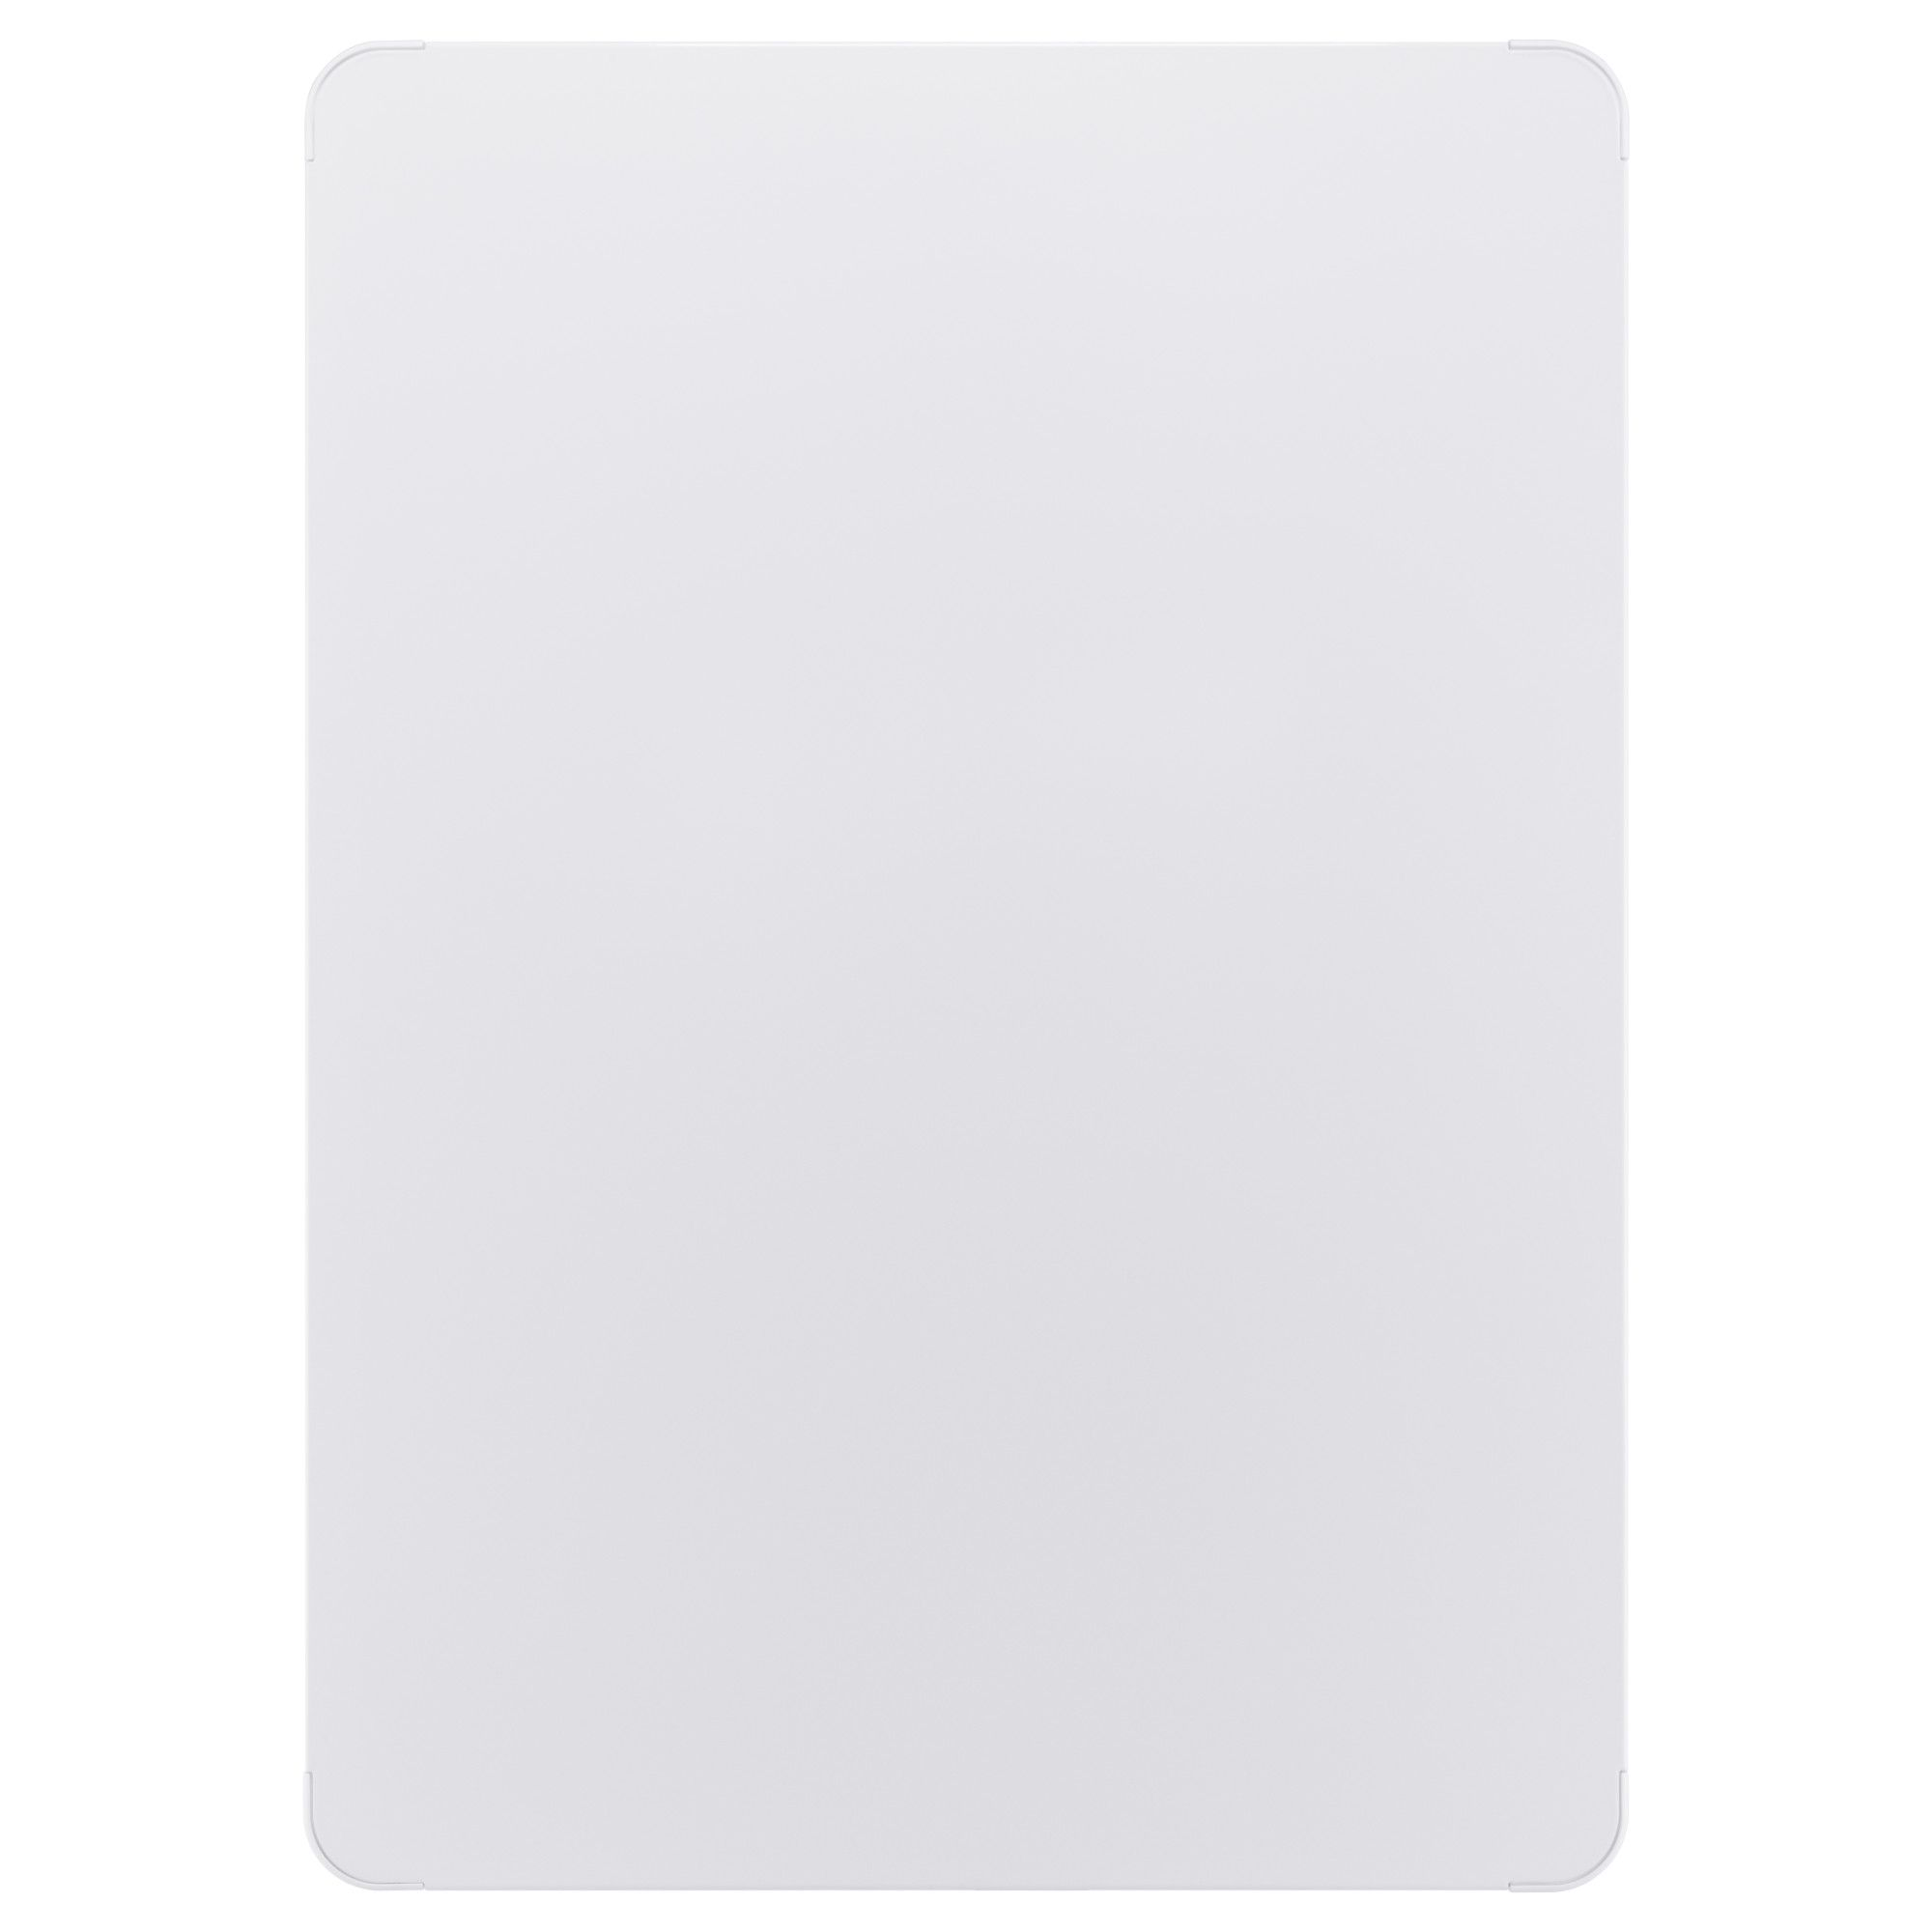 VEMUND Whiteboard/magnetic board White 70X50 cm | Pinterest